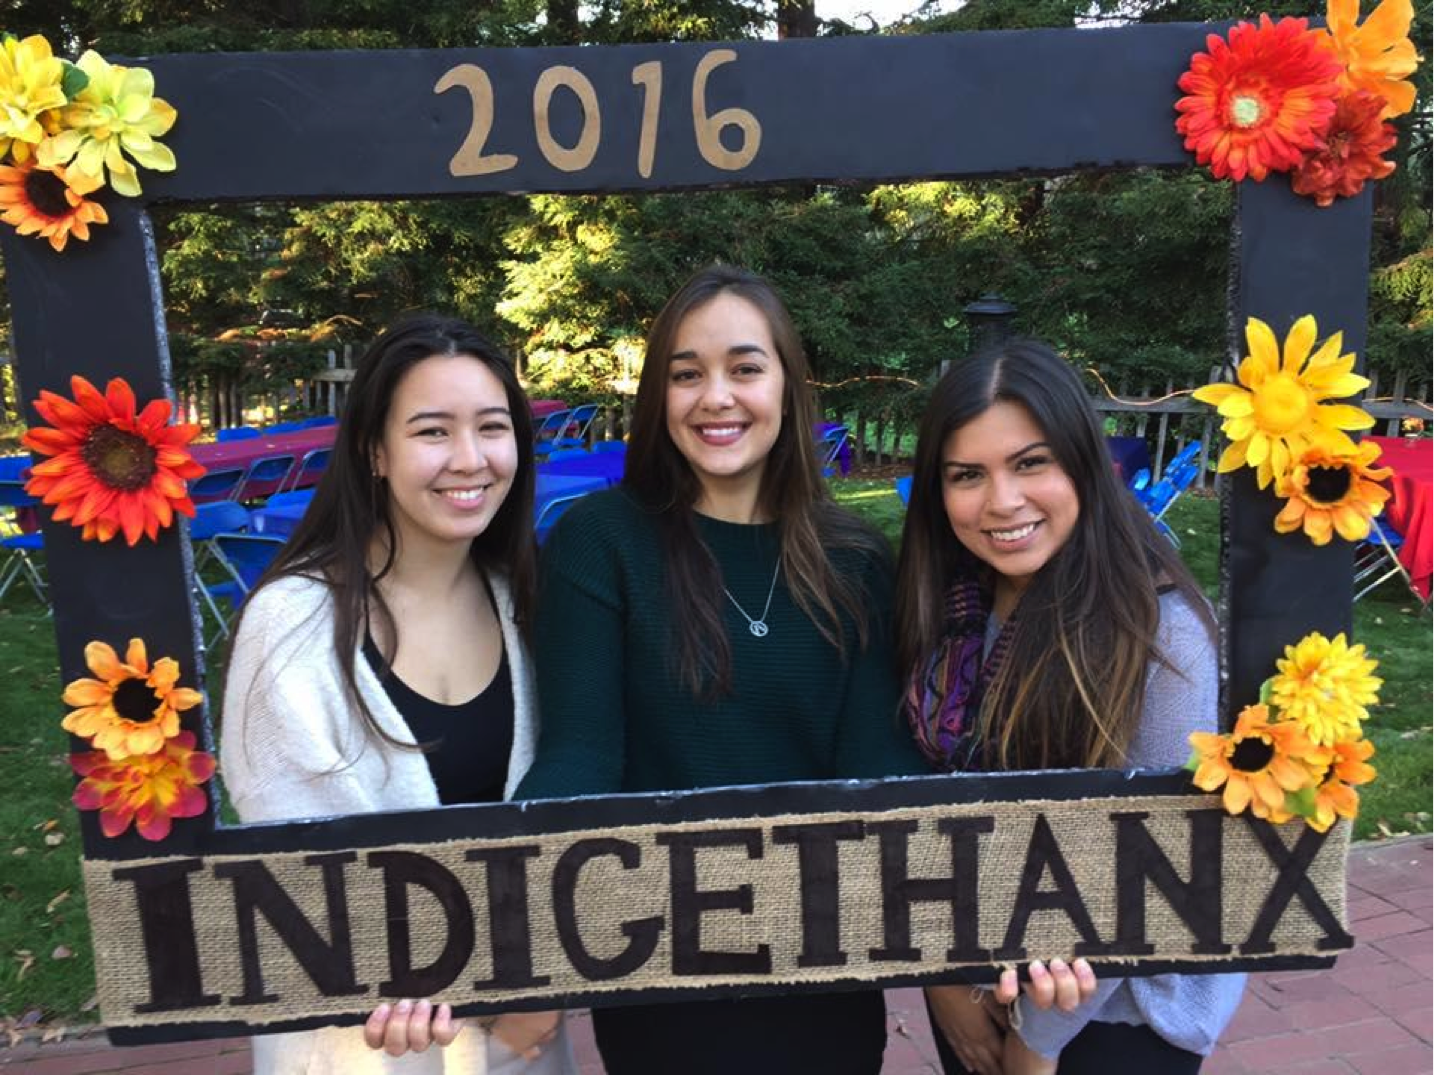 American Indian Resource Center Indigethanx 2016